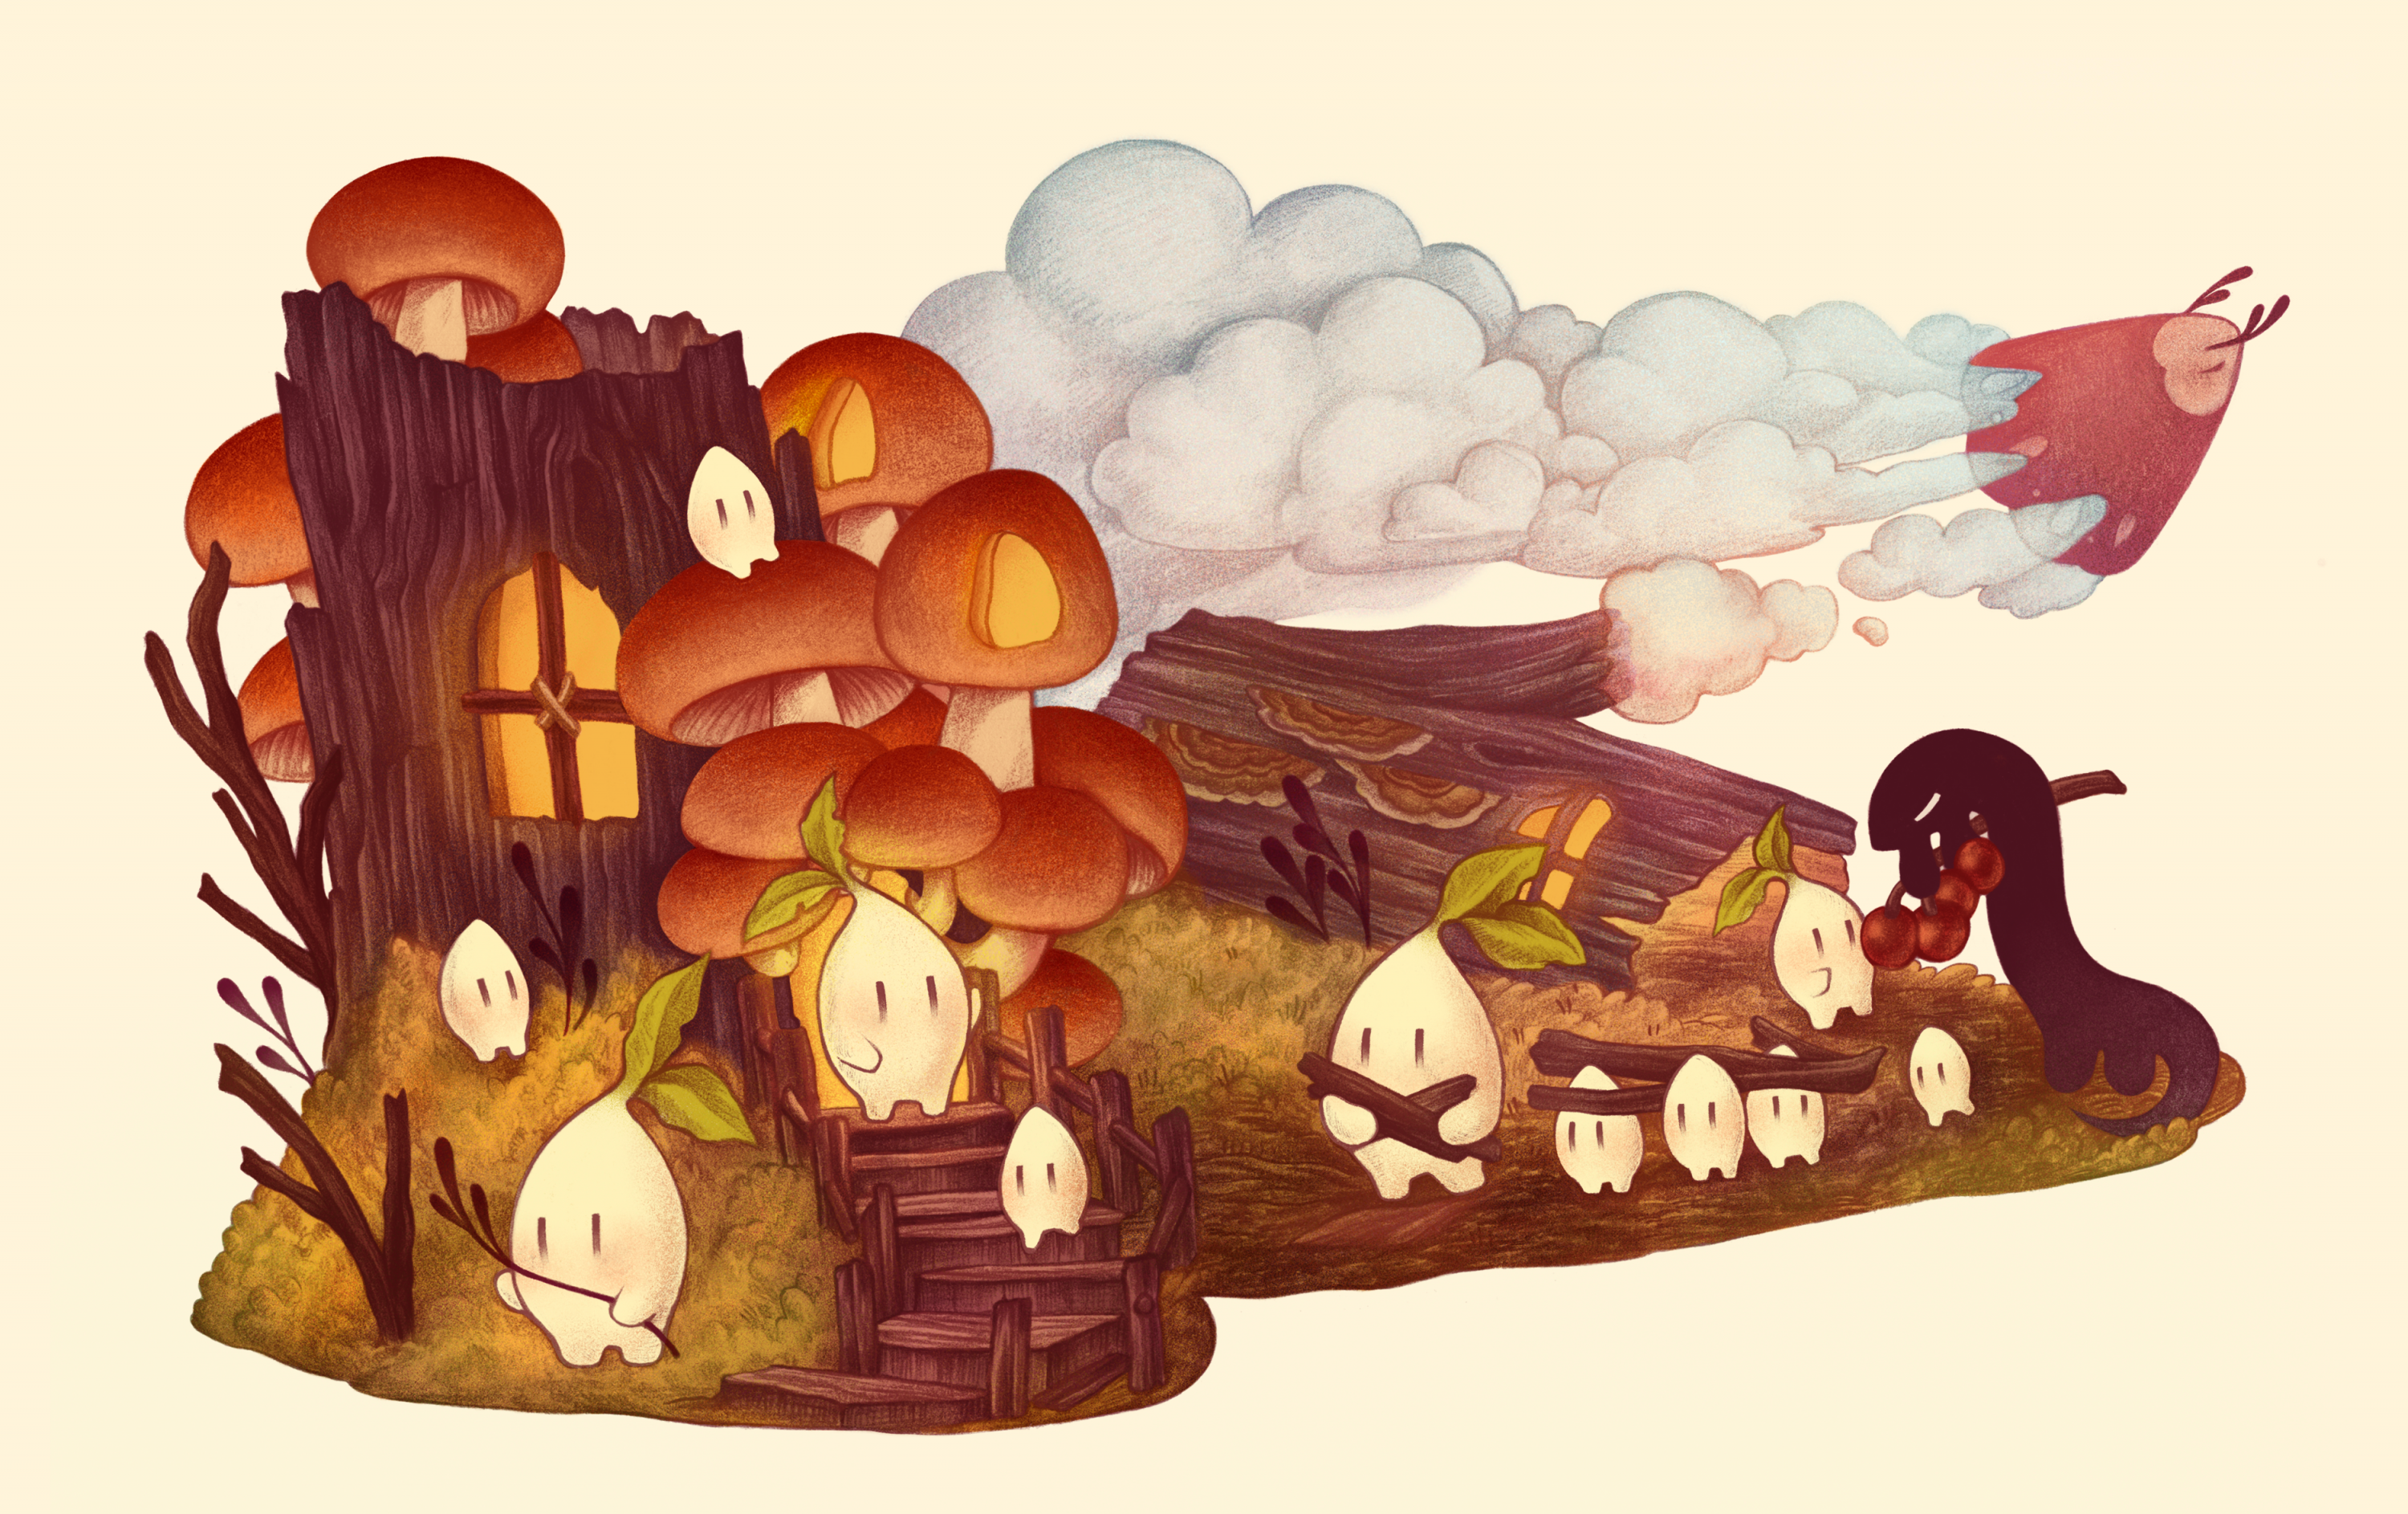 A scene of a mushroom-covered tree stump converted into a small home for characters called Seedling Sprites, which are seen collecting materials such as sticks to prepare for the winter. Another character called a Newt is delivering berries to some of the